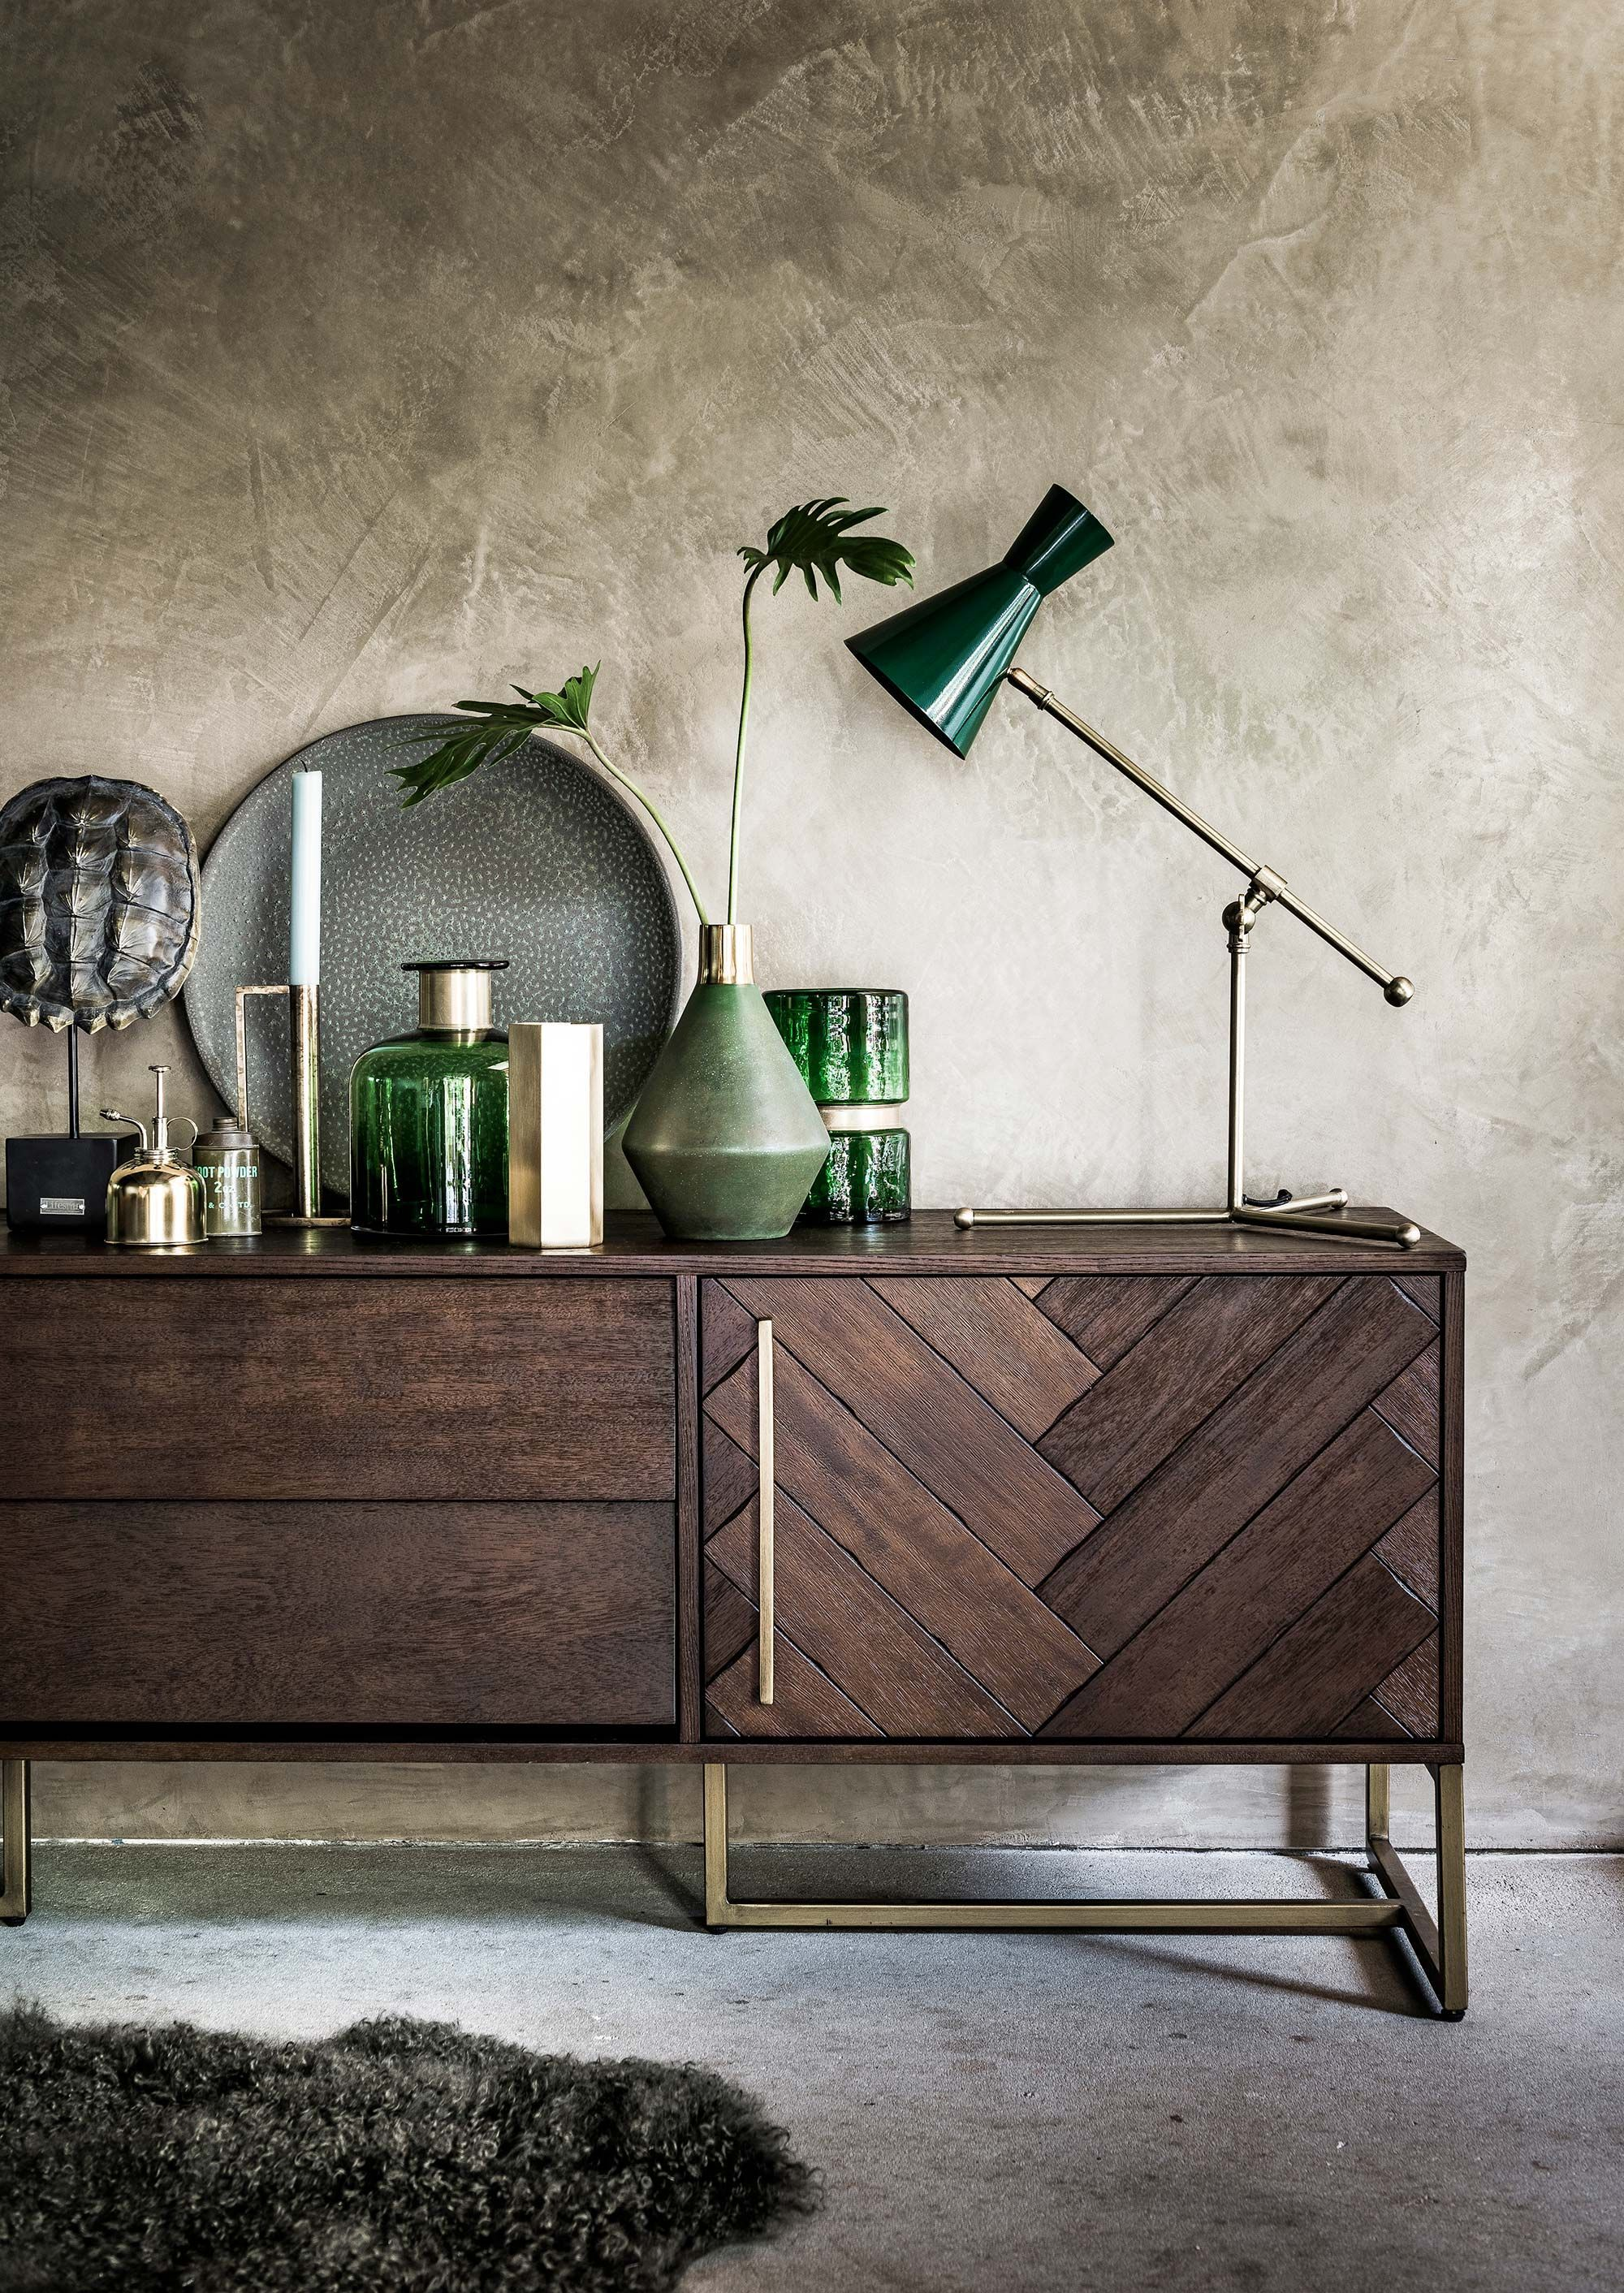 Get The Vintage Living Room You've Ever Wanted with These Vintage Industrial Style Tips!   http://vintageindustrialstyle.com/